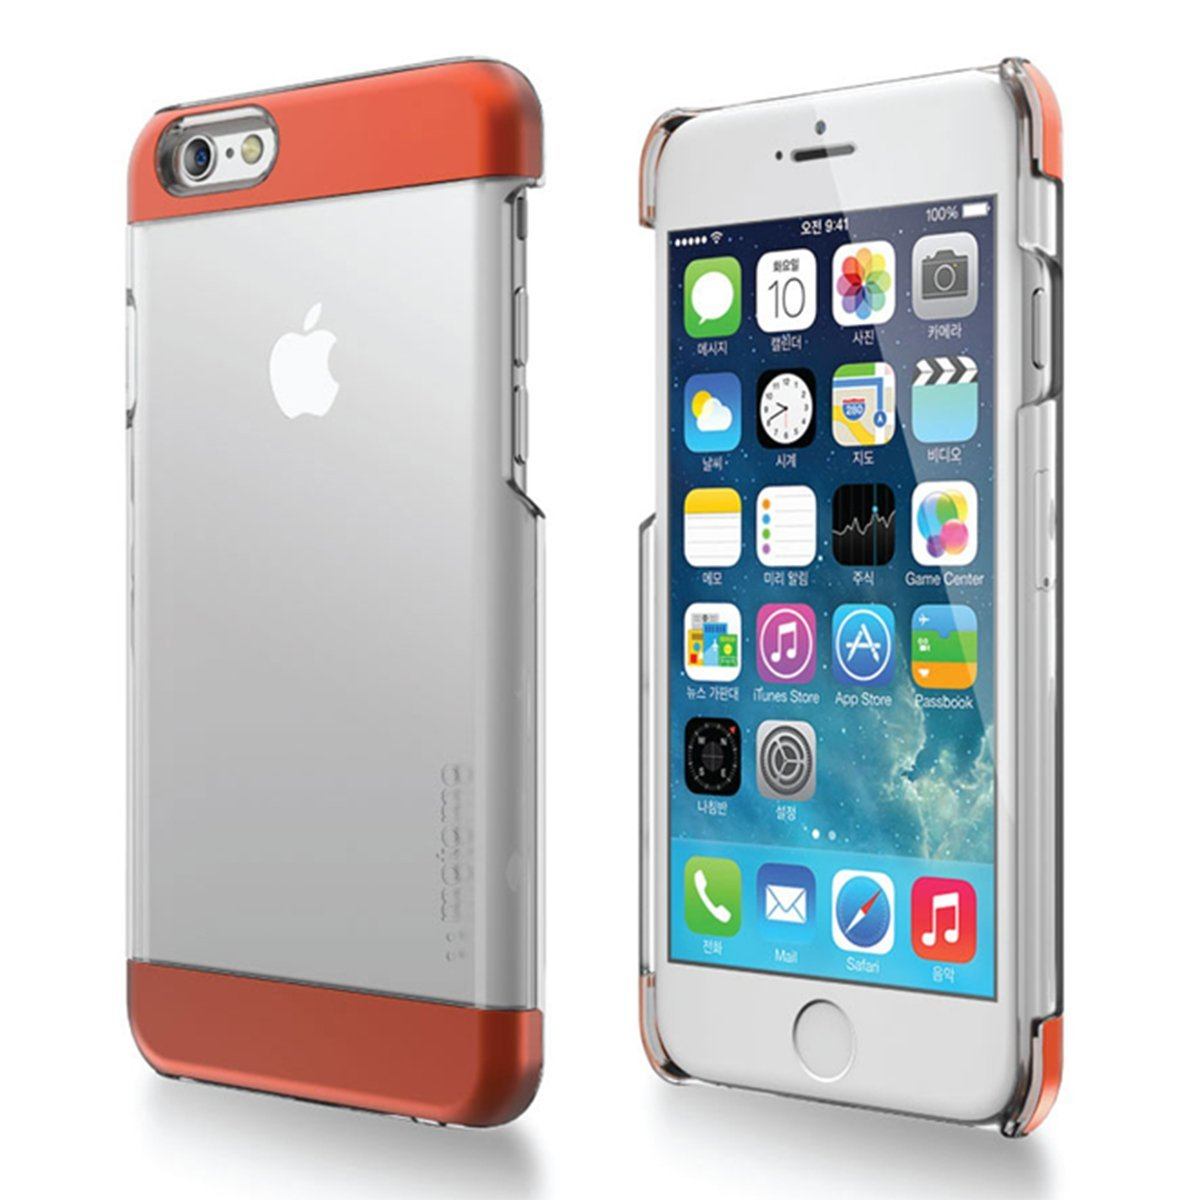 Apple iPhone 6 PLUS/6S PLUS (5.5 inch) Case, INO Wing Series [Orange] Slim Clear Form-Fitting Hard Plastic Protective Case Cover